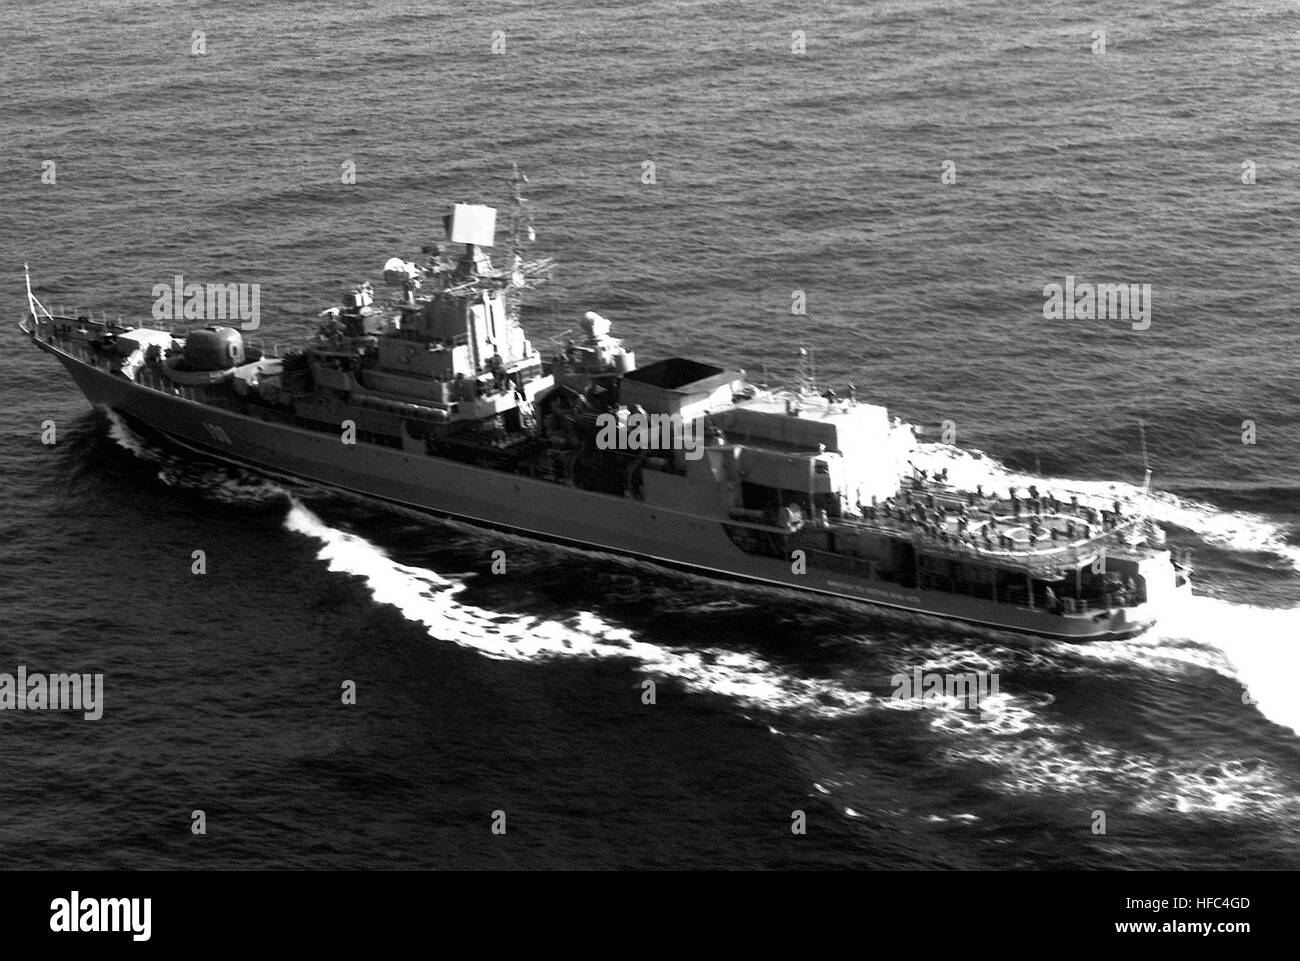 A port quarter view of the Soviet KGB Krivak III class frigate Iment 70 Lettya Vuk KGB underway. Imeni 70-letiya - Stock Image